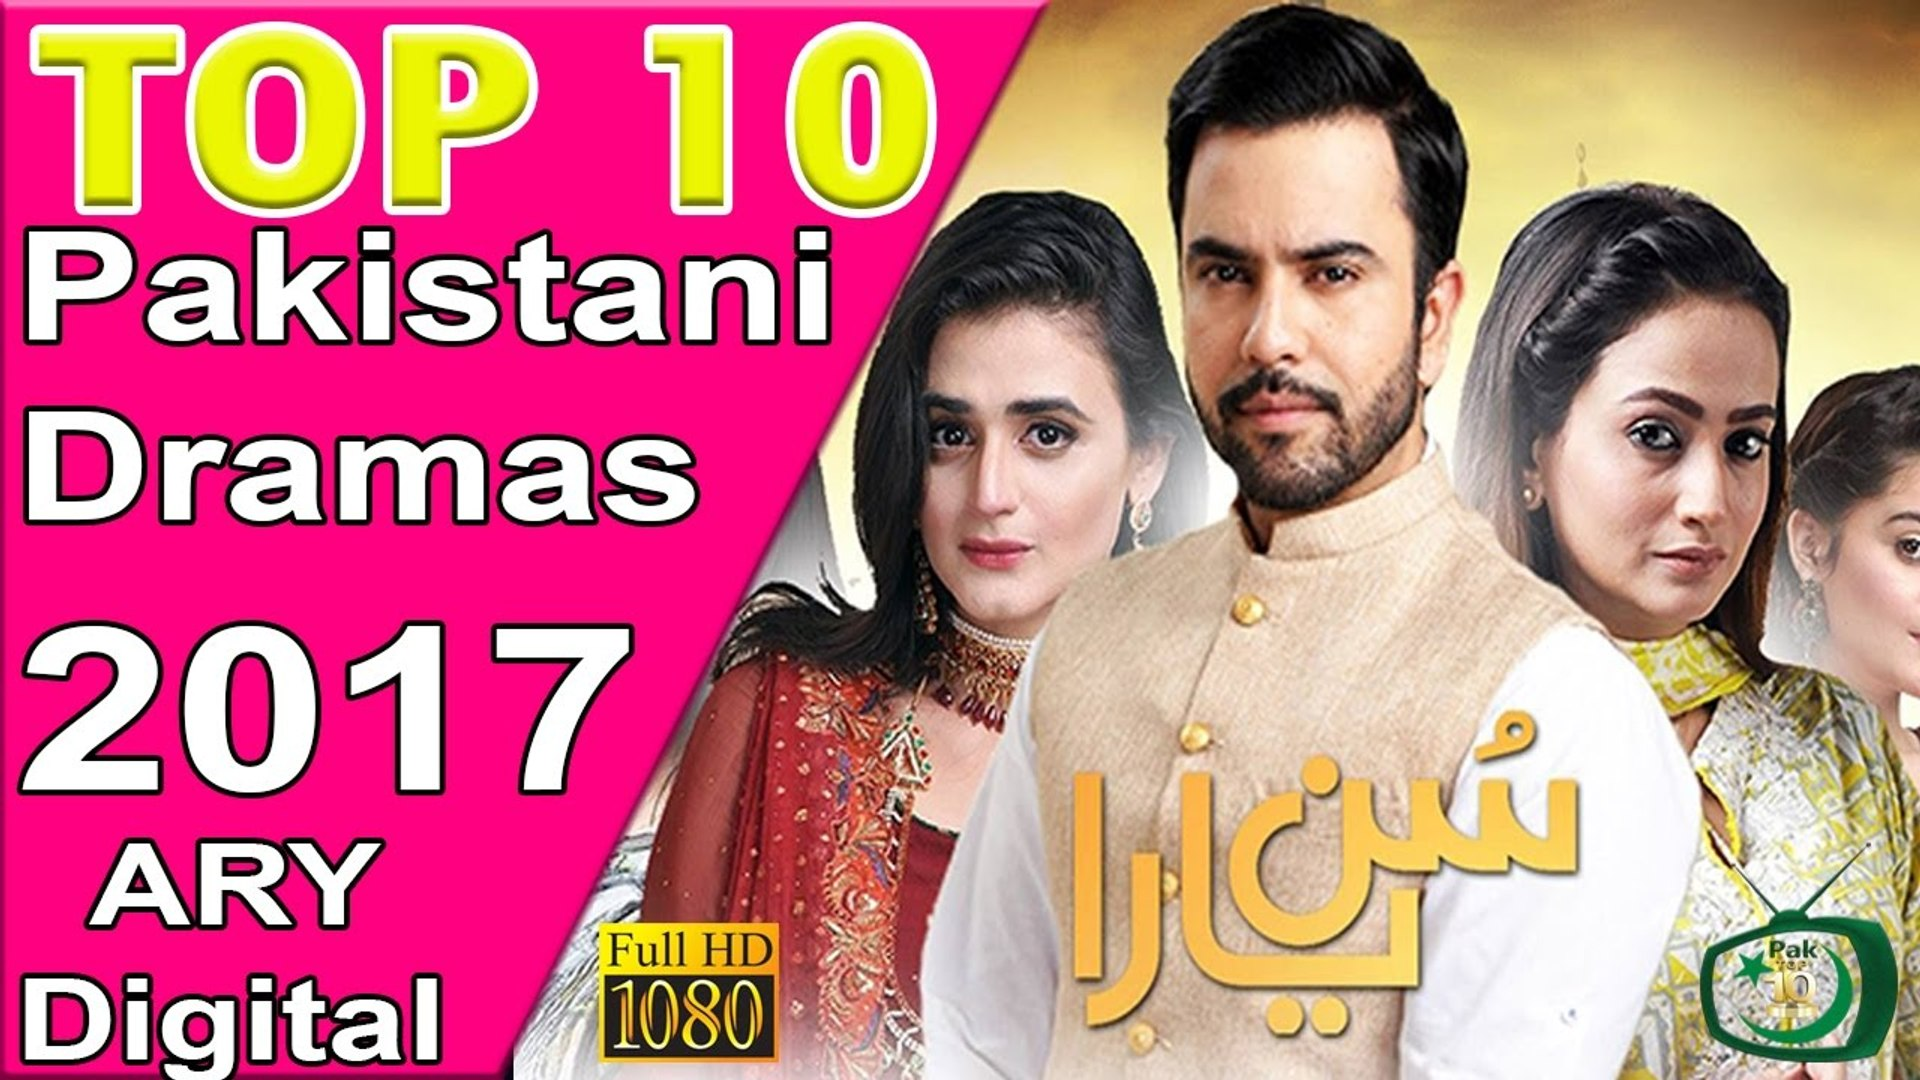 Top 10 Pakistani Dramas 2017 of ARY Digital | On Air Drama Serials List